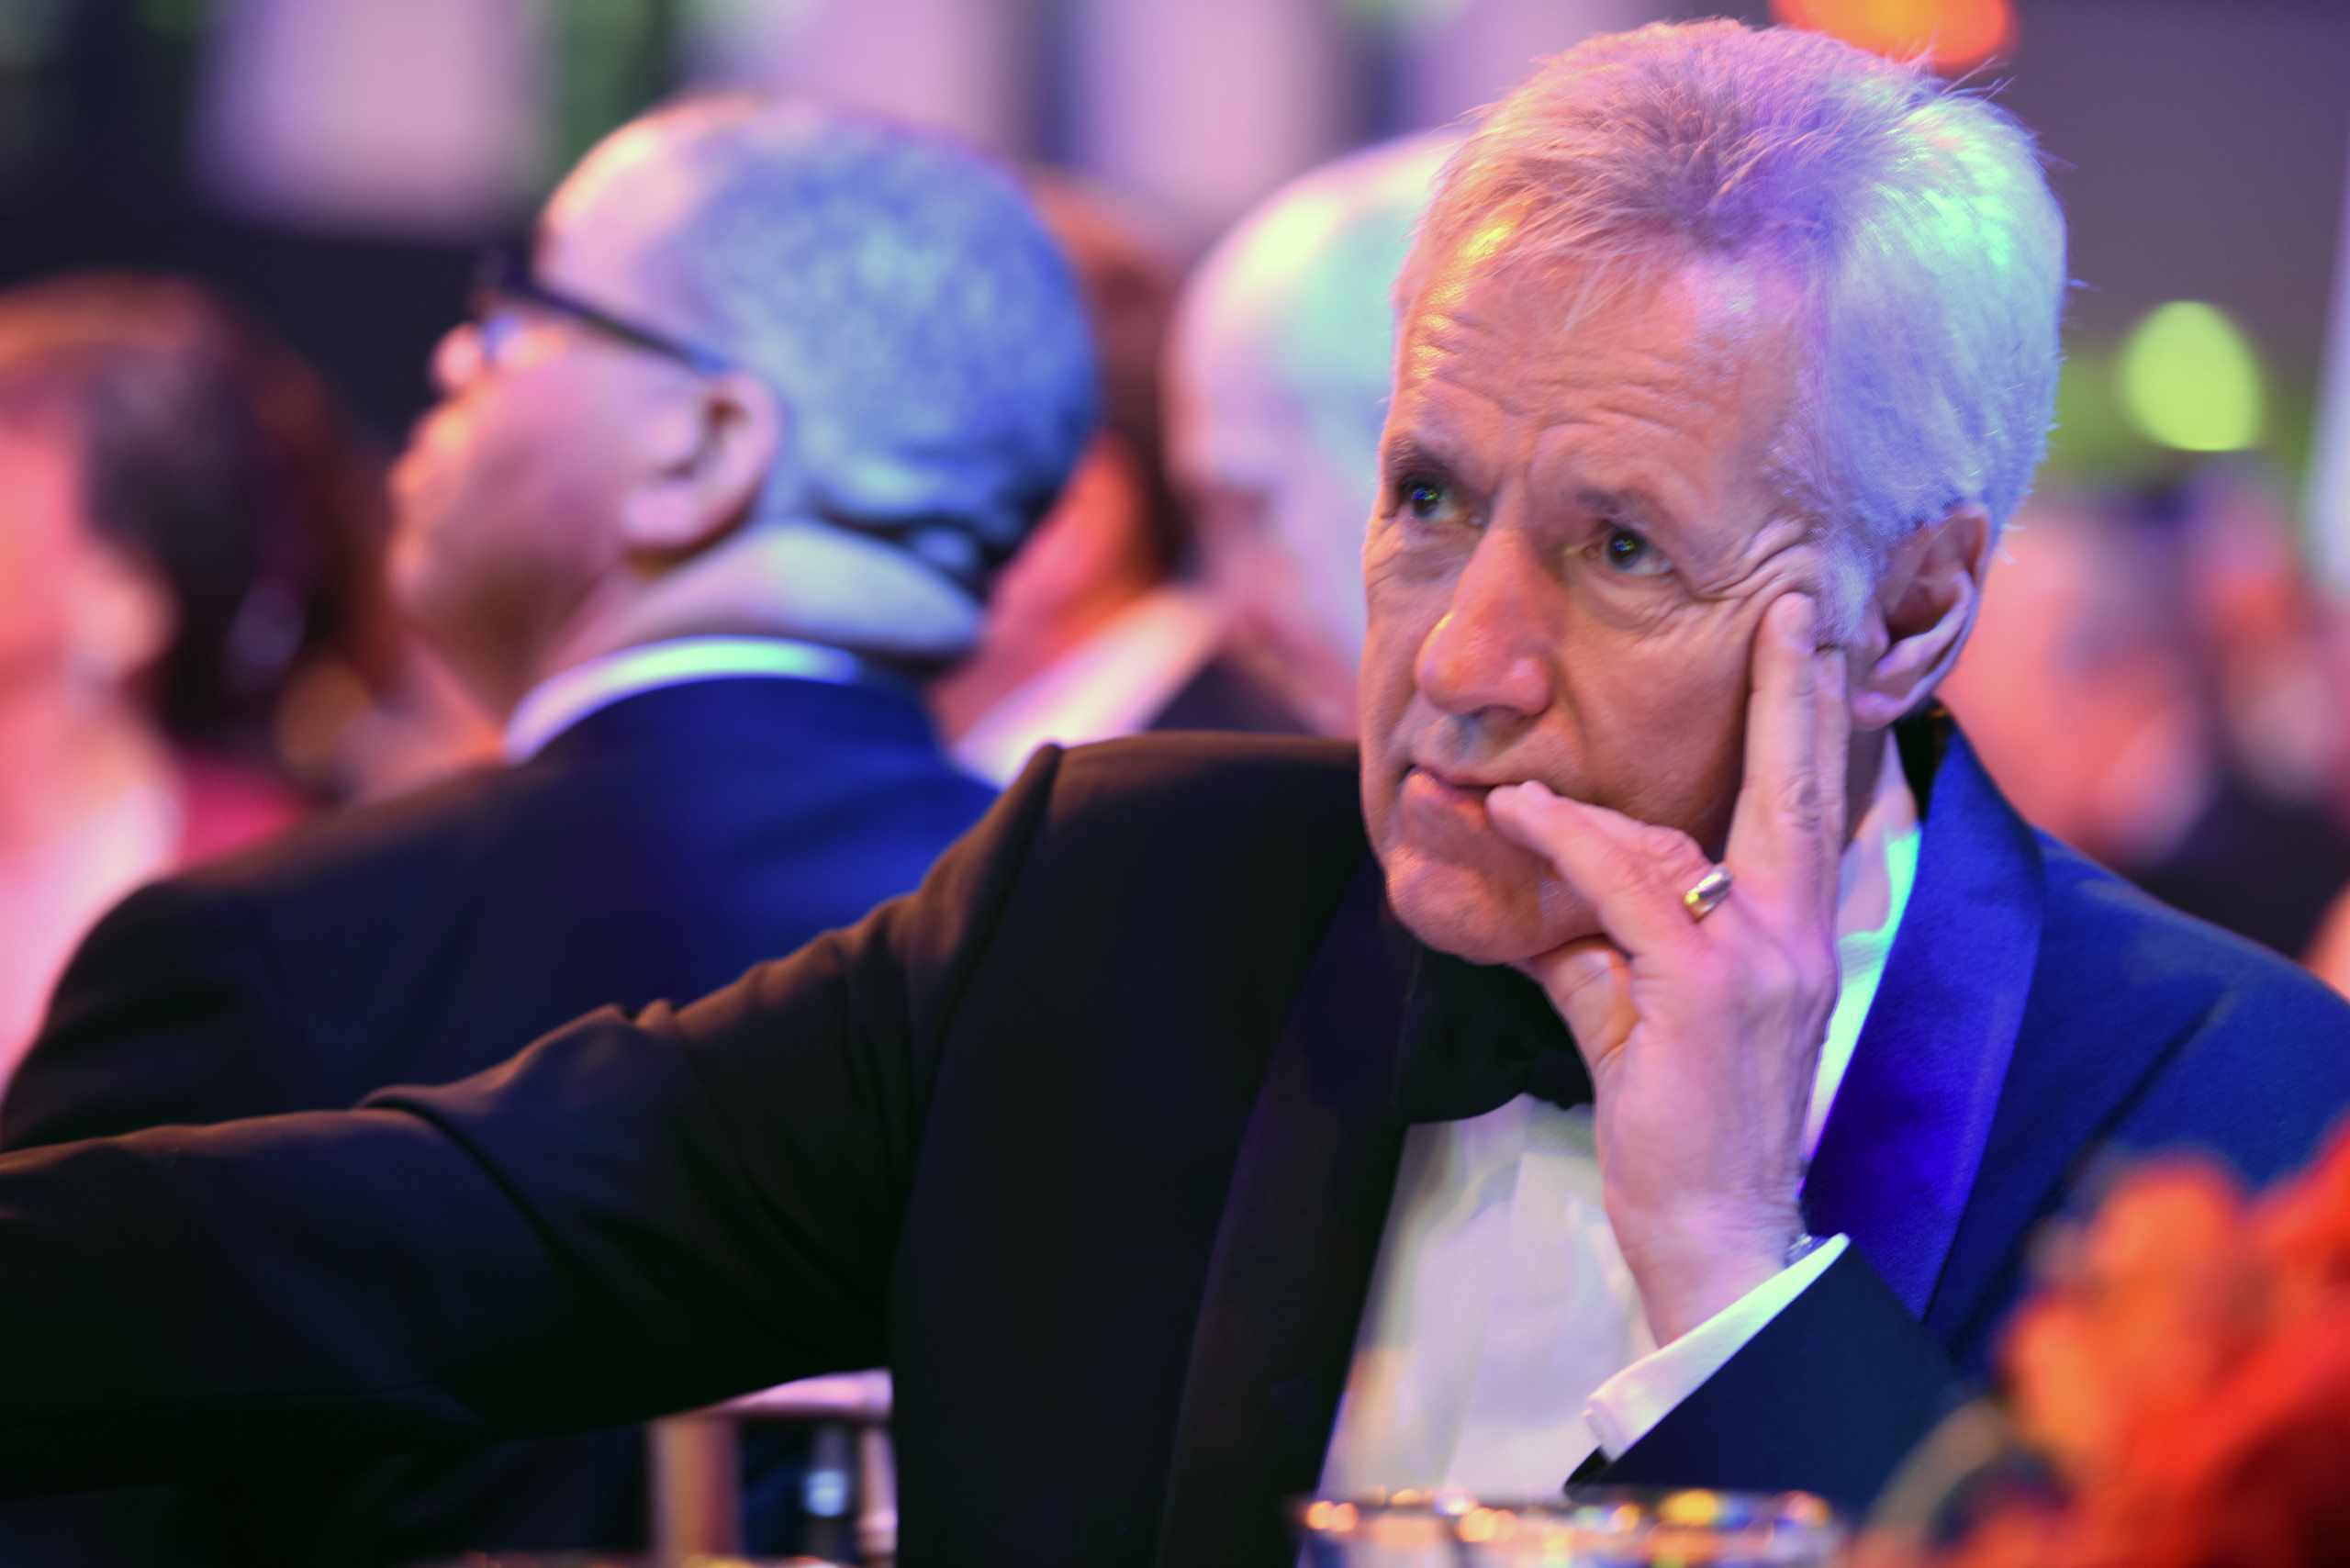 Alex Trebek Died: The Famous' Jeopardy' Host Leaves the World at 80